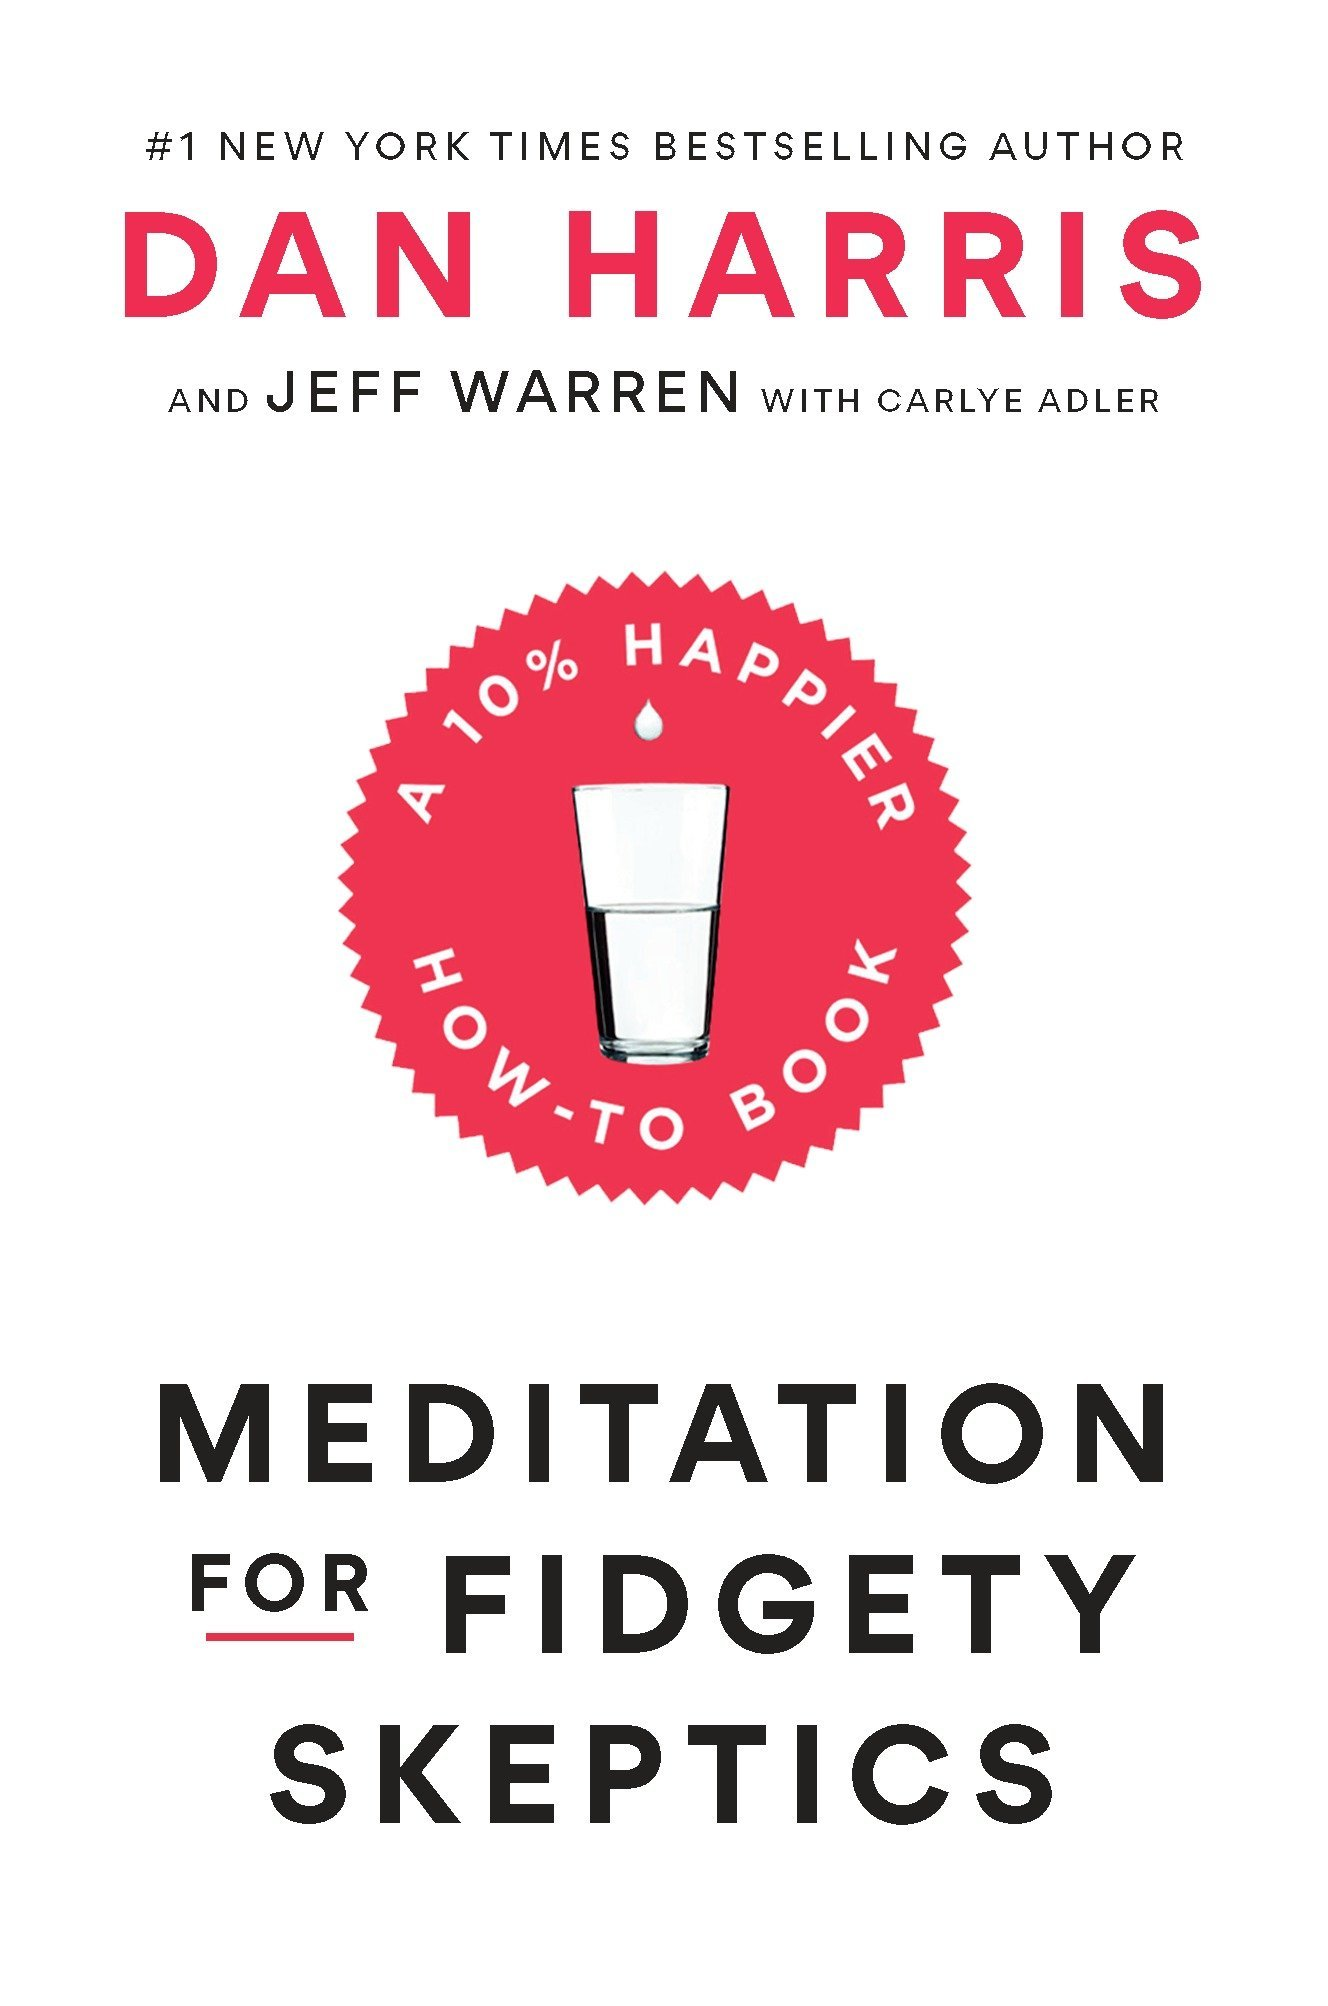 Meditation for Fidgety Skeptics: A 10% Happier How-to Book: Harris ...